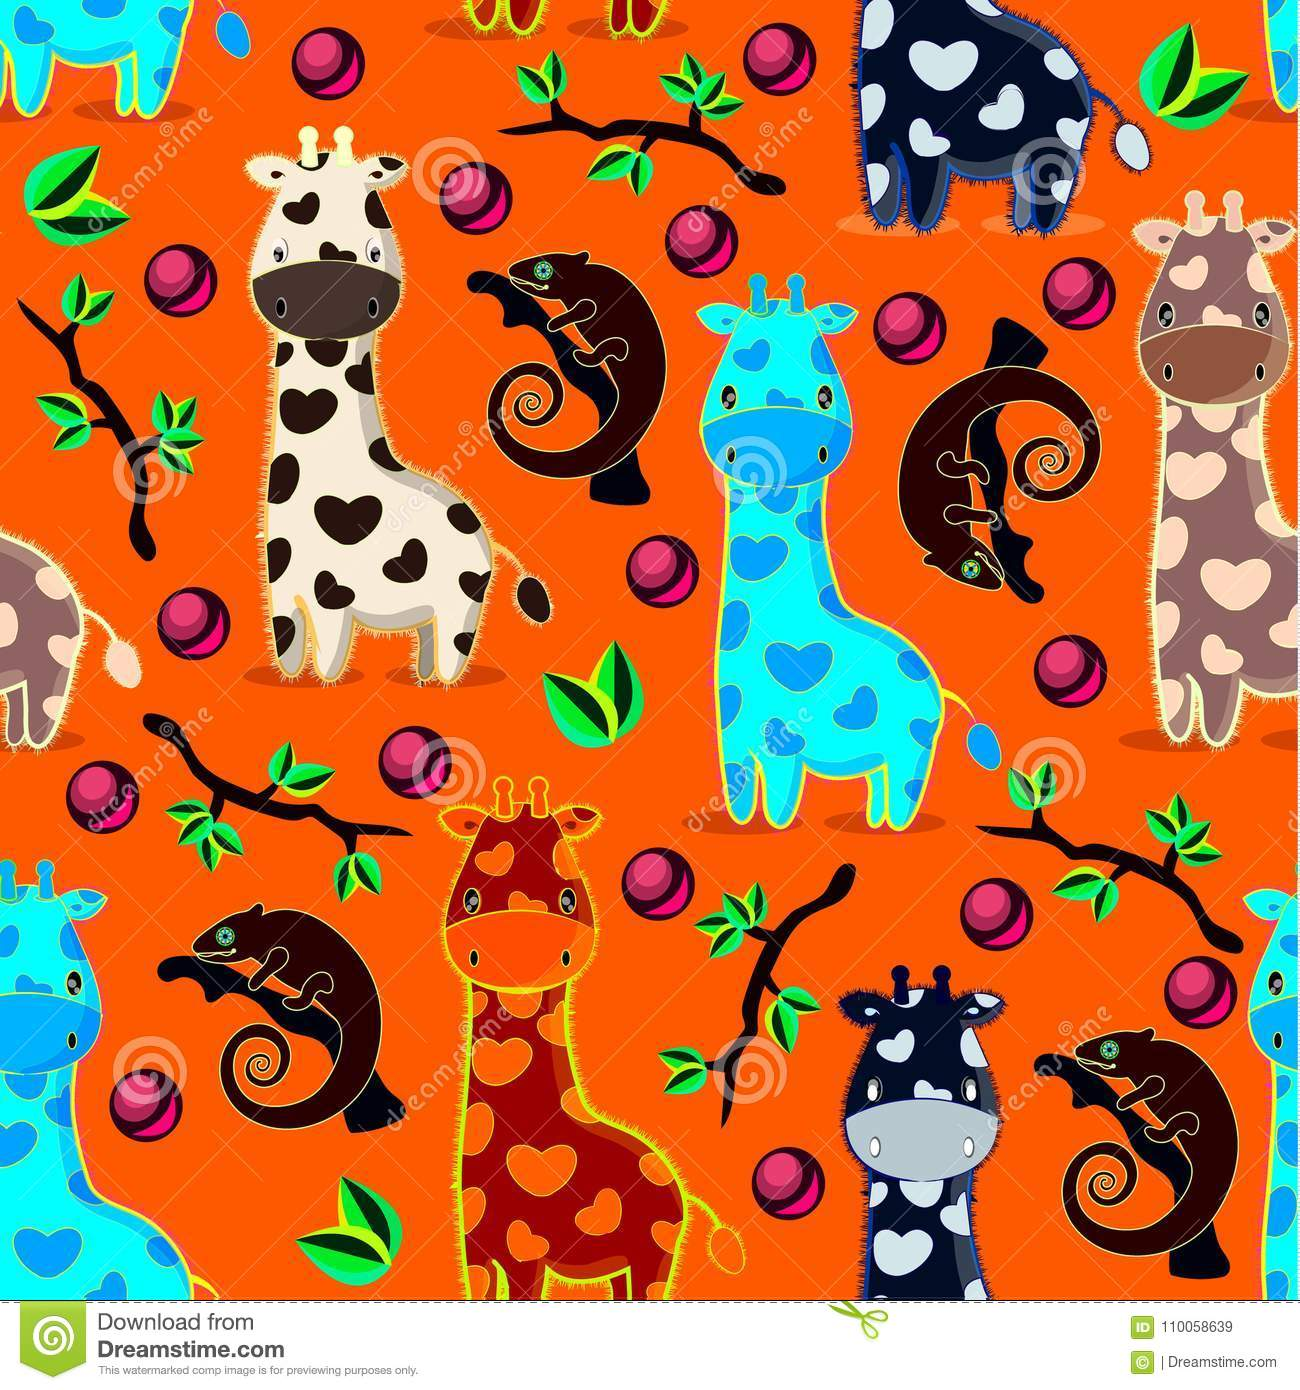 Vector seamles pattern with giraffes, chameleons, branches